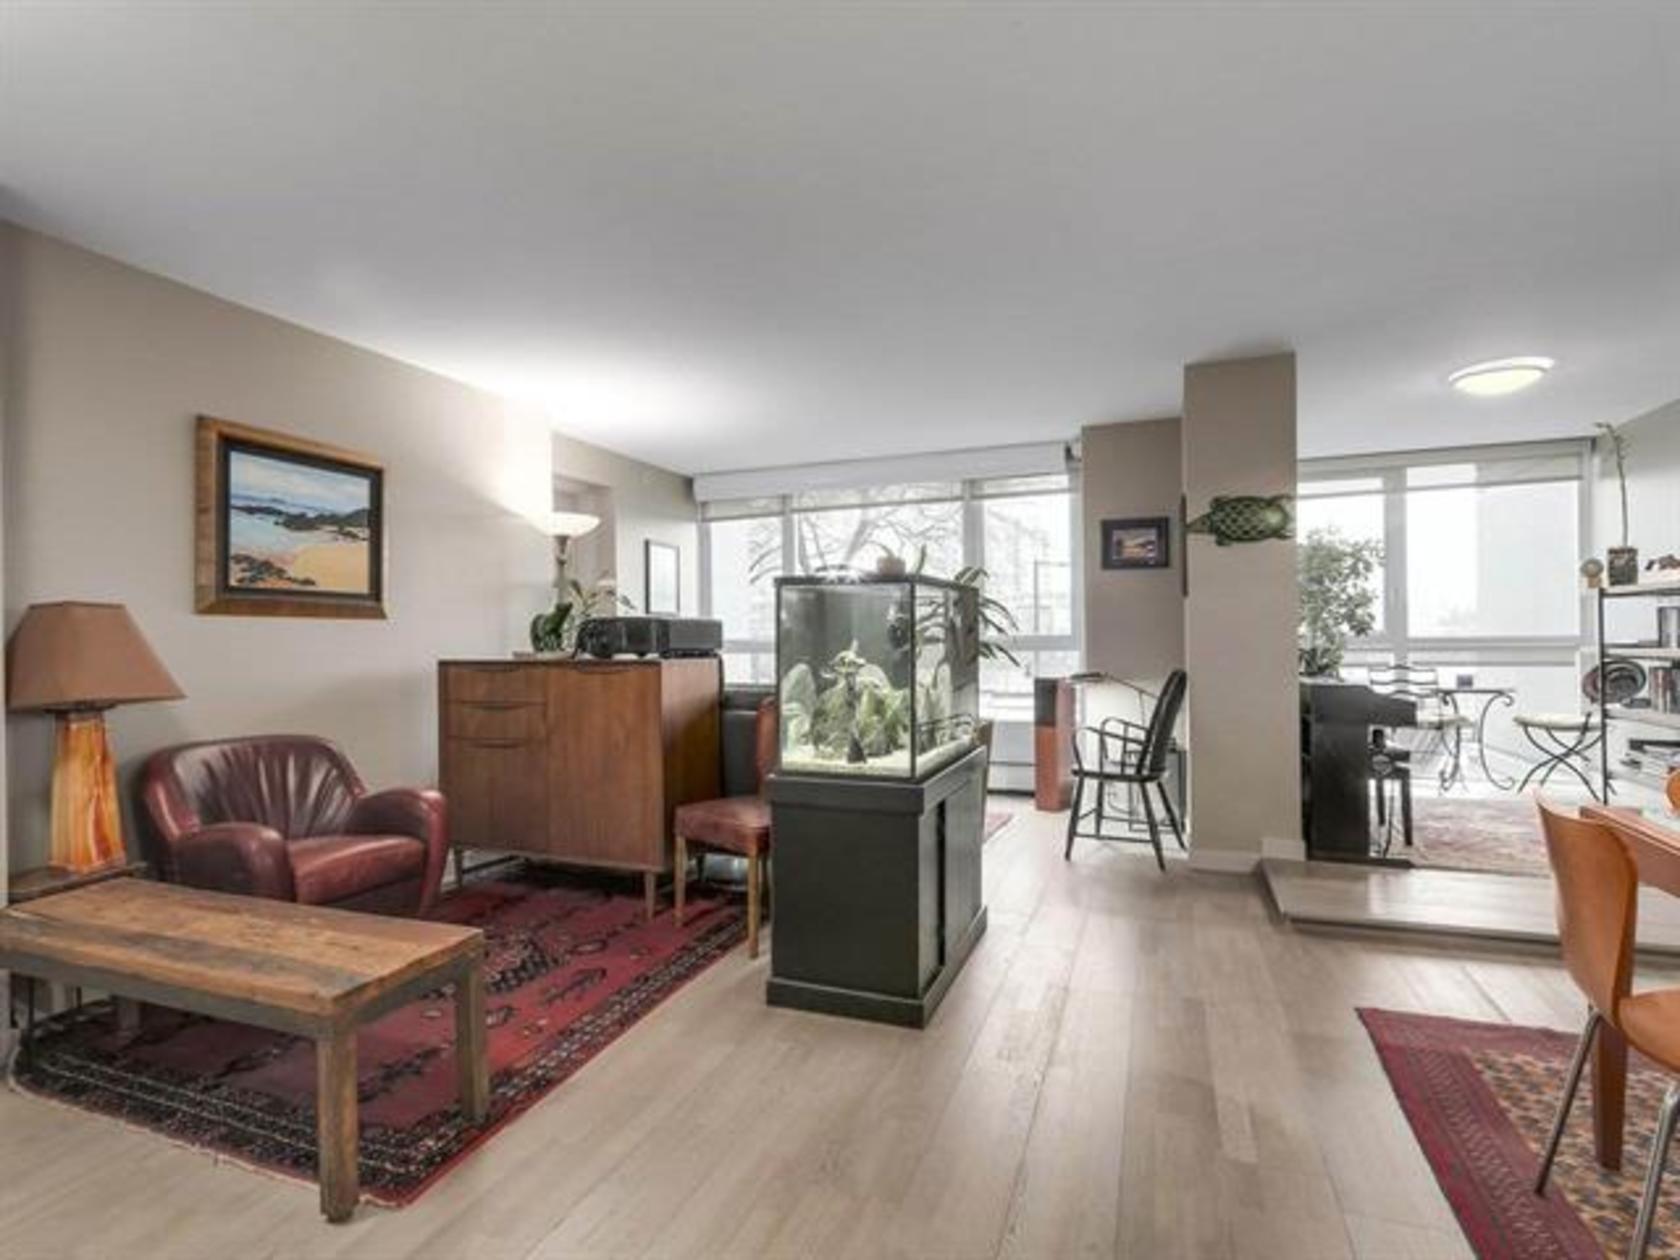 262252492-1 at 202 - 1388 Homer Street, Yaletown, Vancouver West